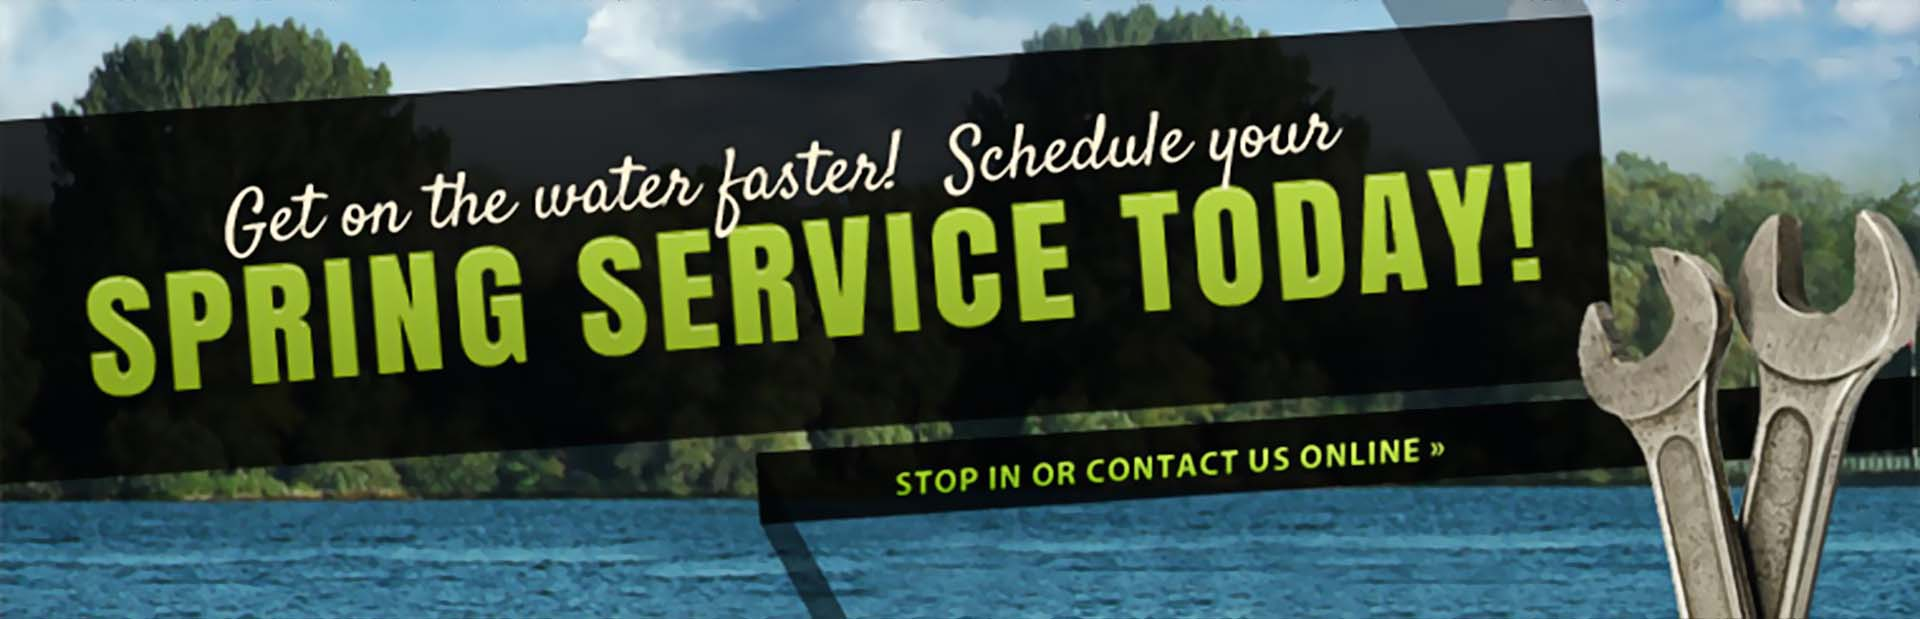 Click here to schedule your service and get on the water faster!